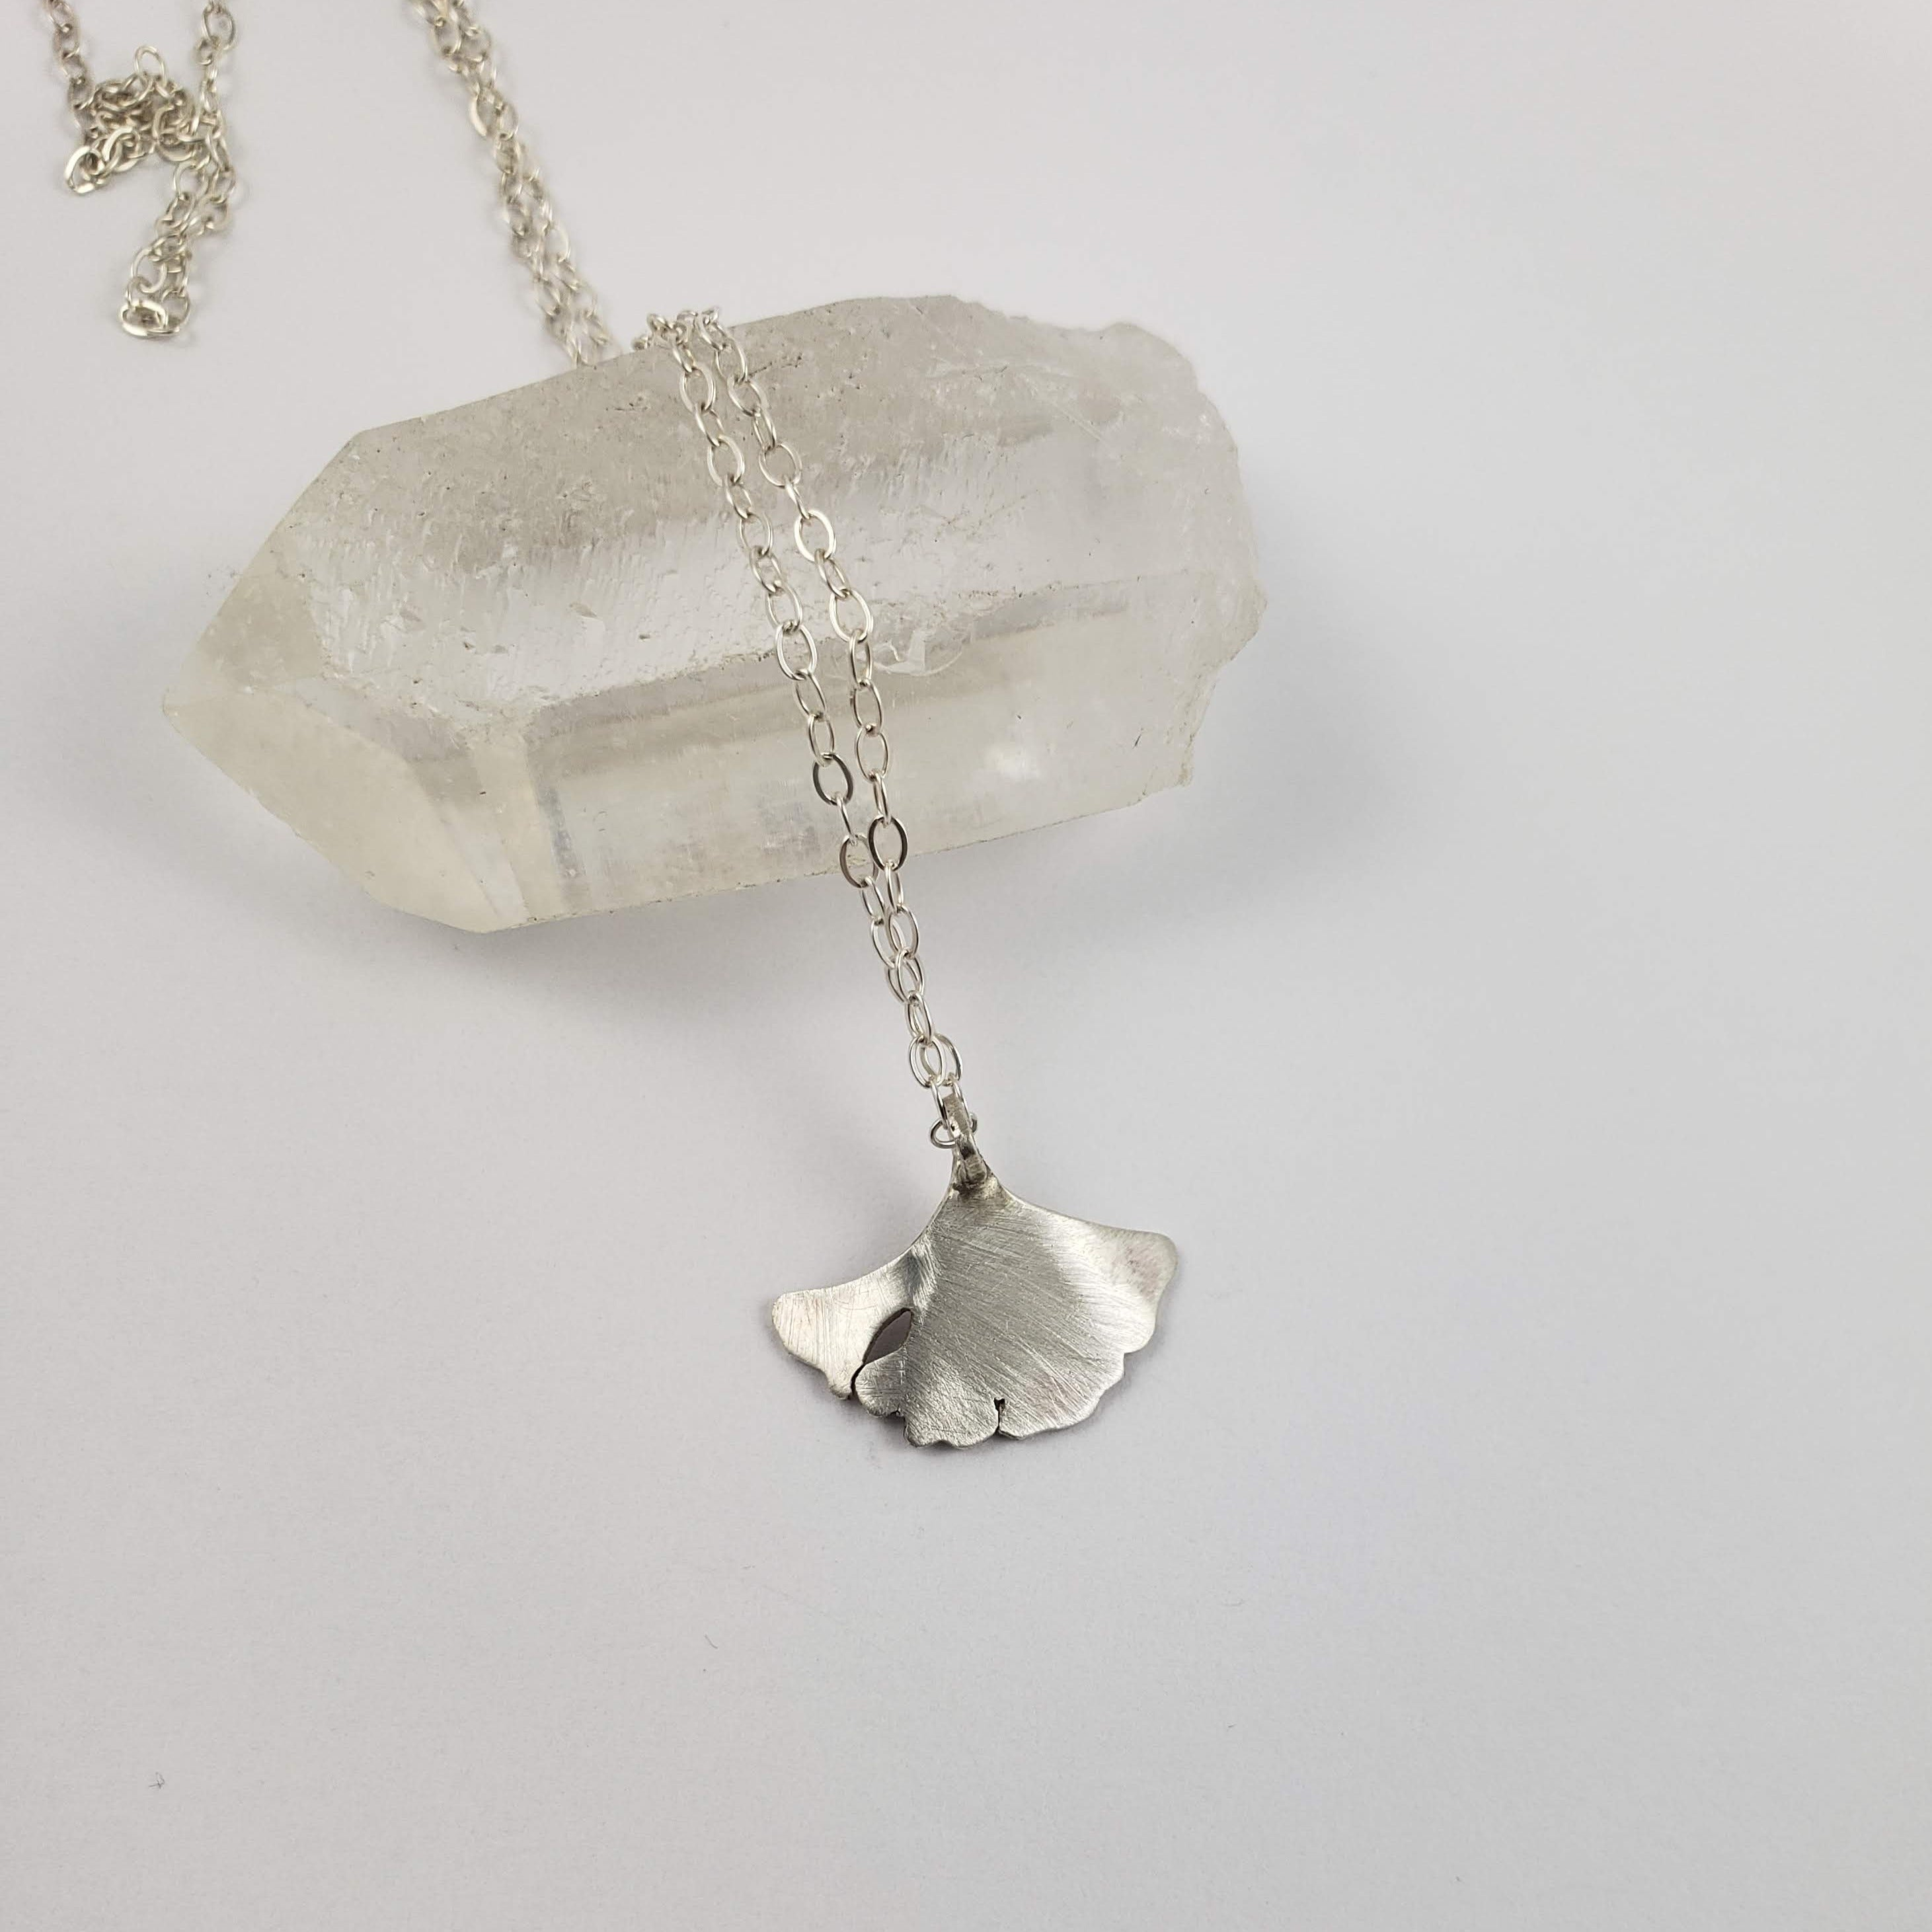 Small Gingko Leaf Necklace